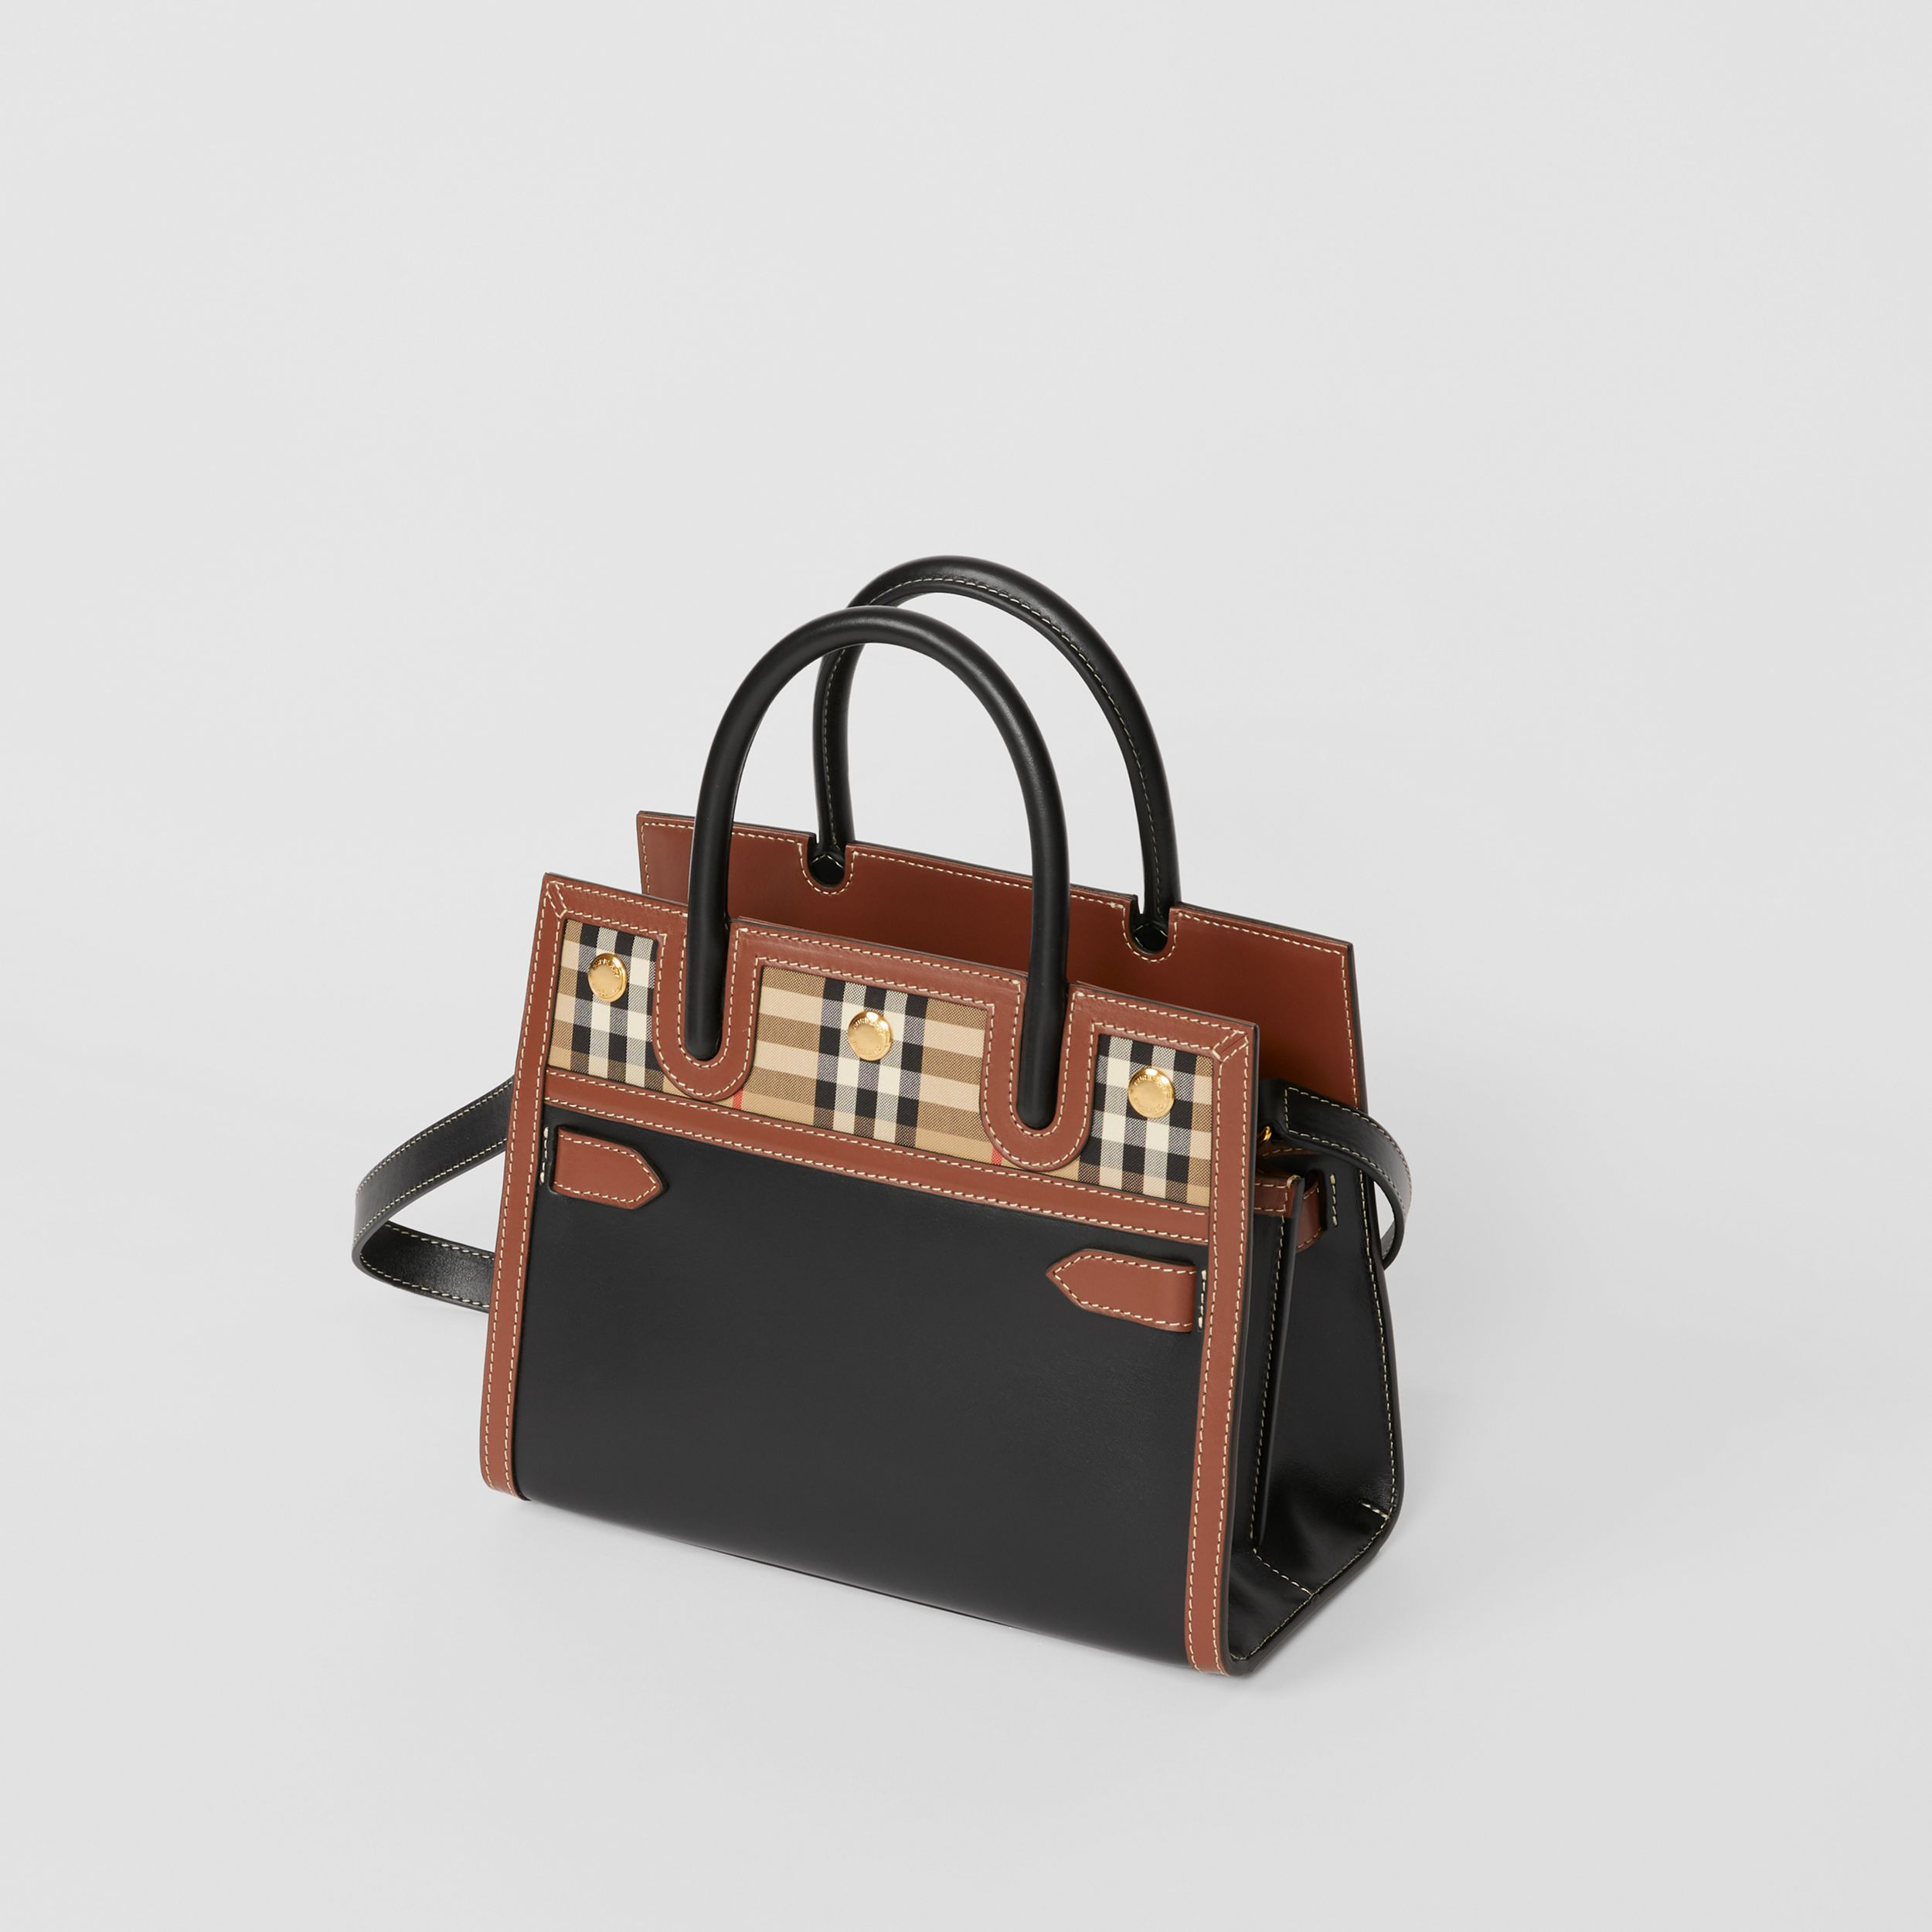 Mini Leather and Vintage Check Two-handle Title Bag in Black - Women | Burberry United Kingdom - 4